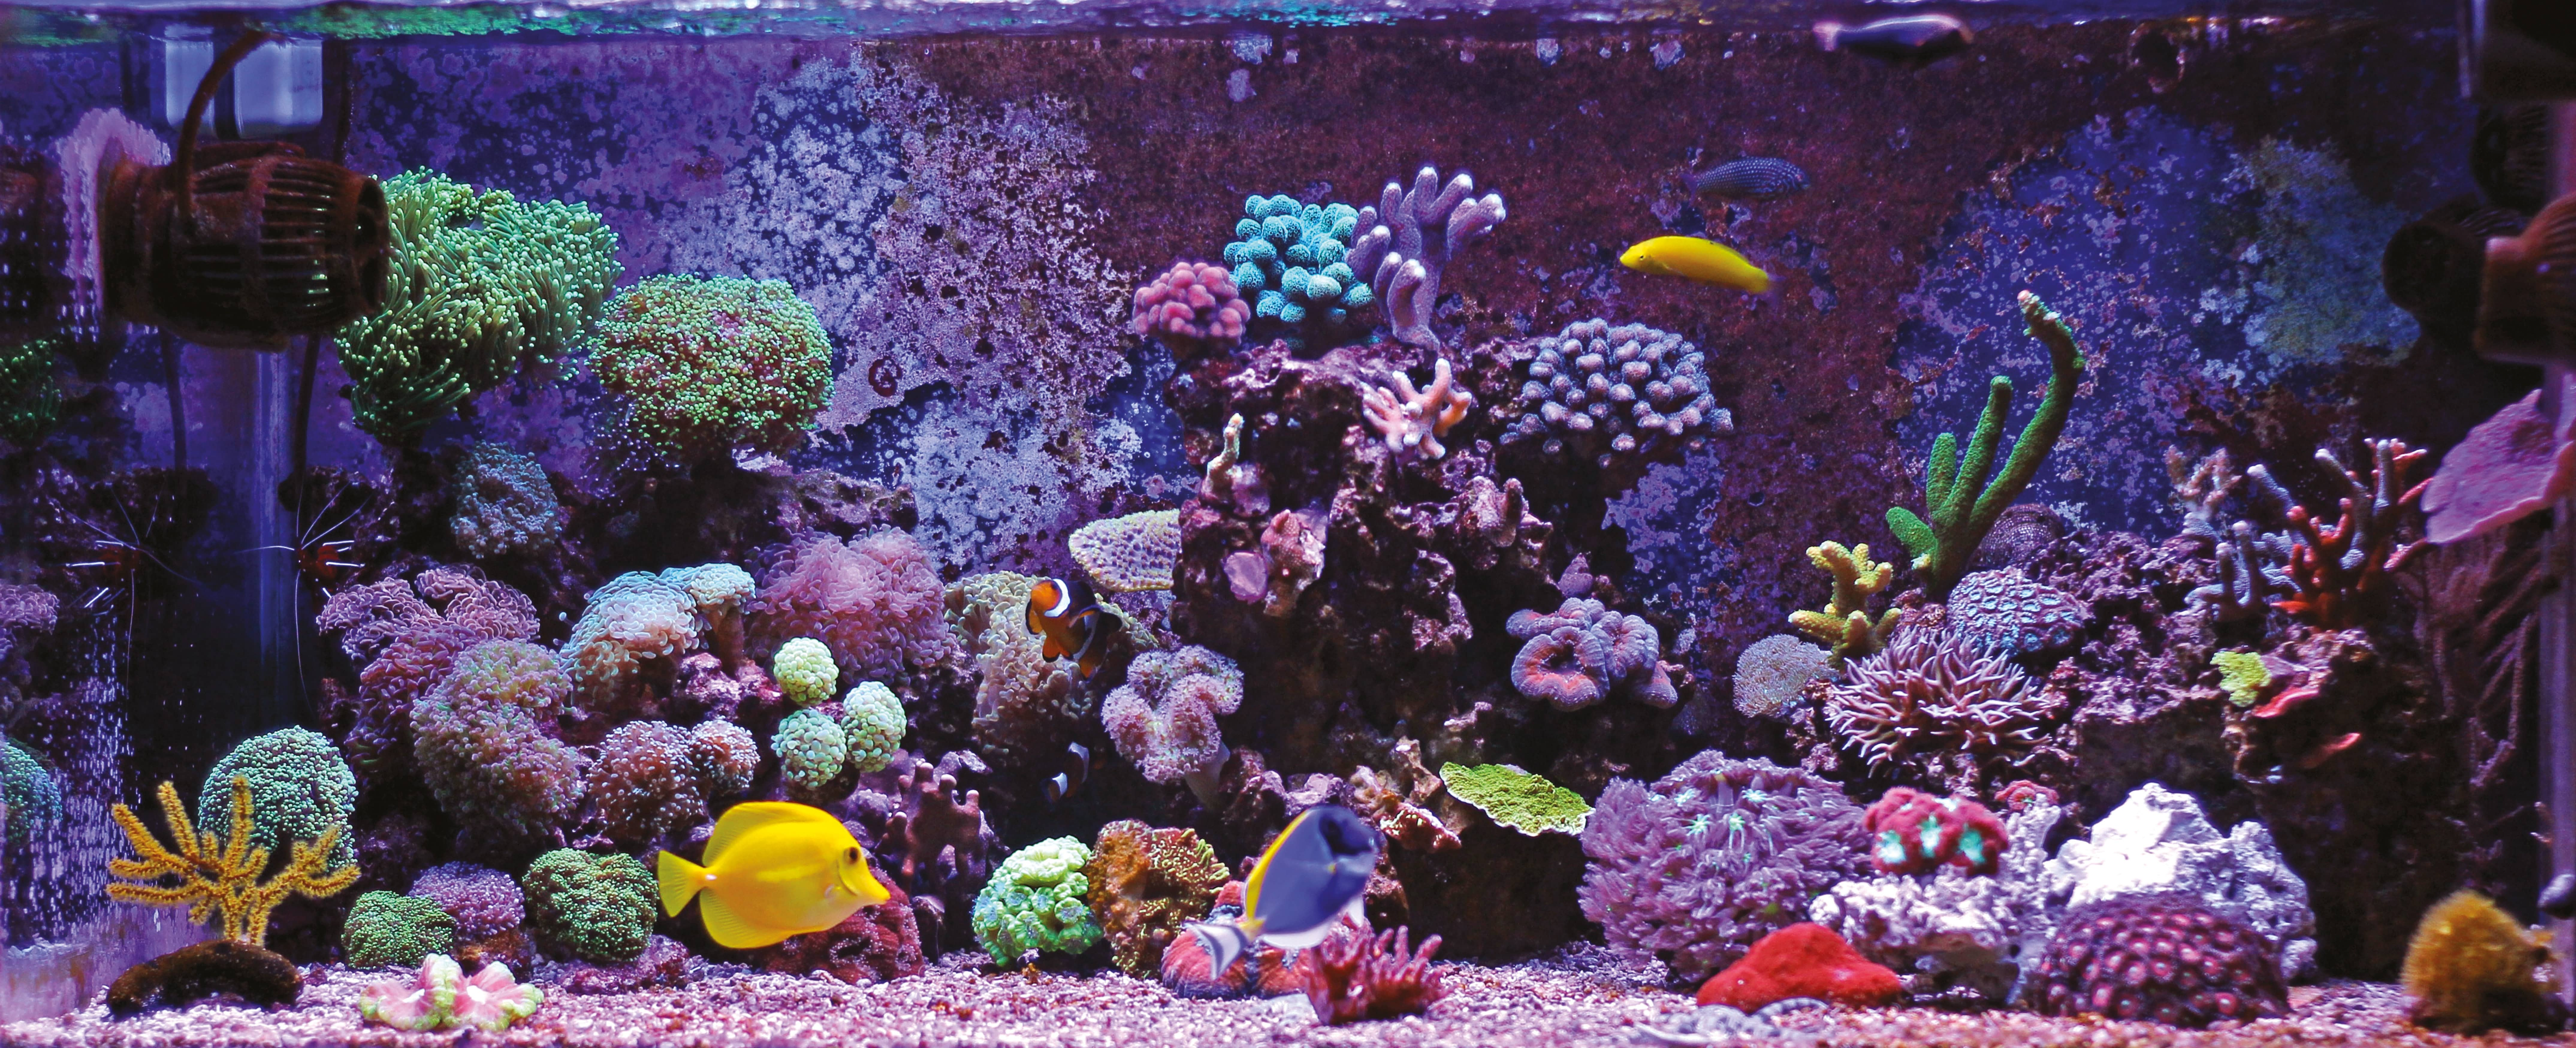 17 Tips For A Healthy Fish Tank